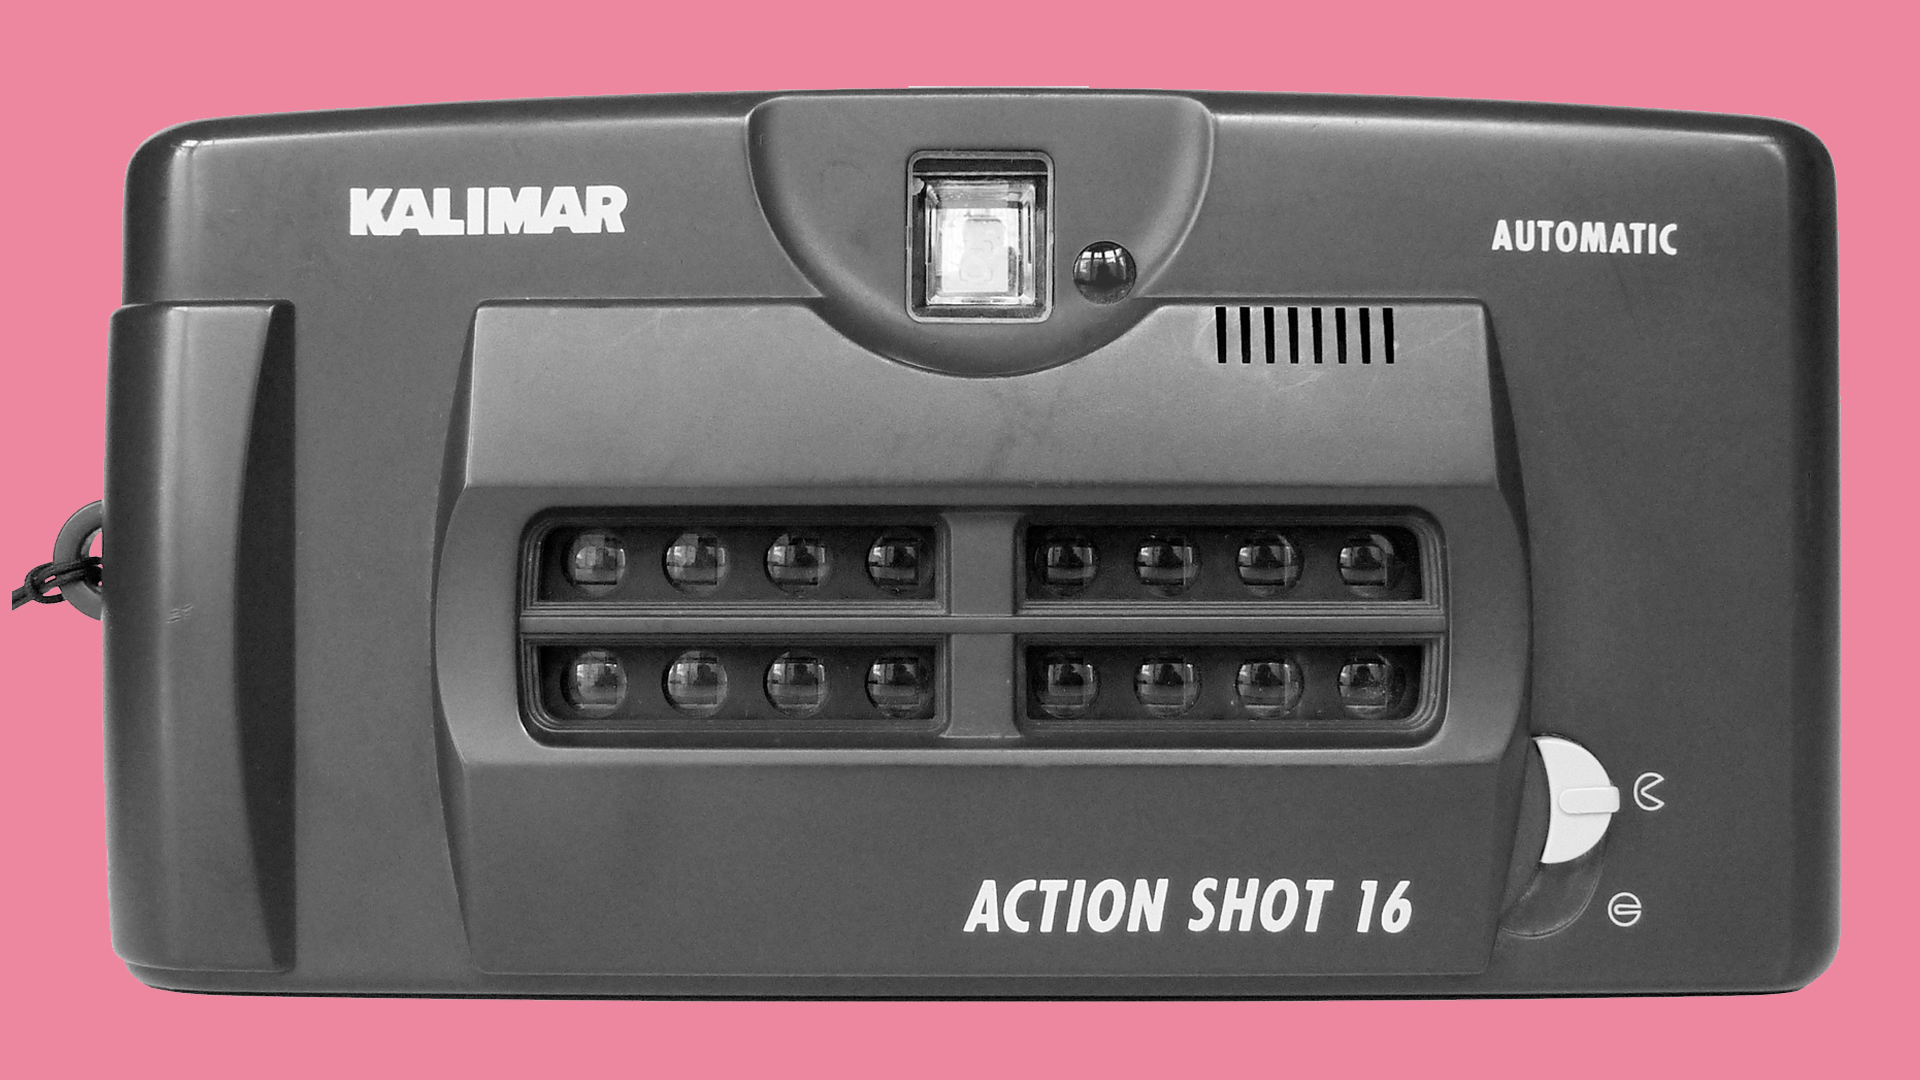 The front of the Kalimar Actionshot camera on a pink background